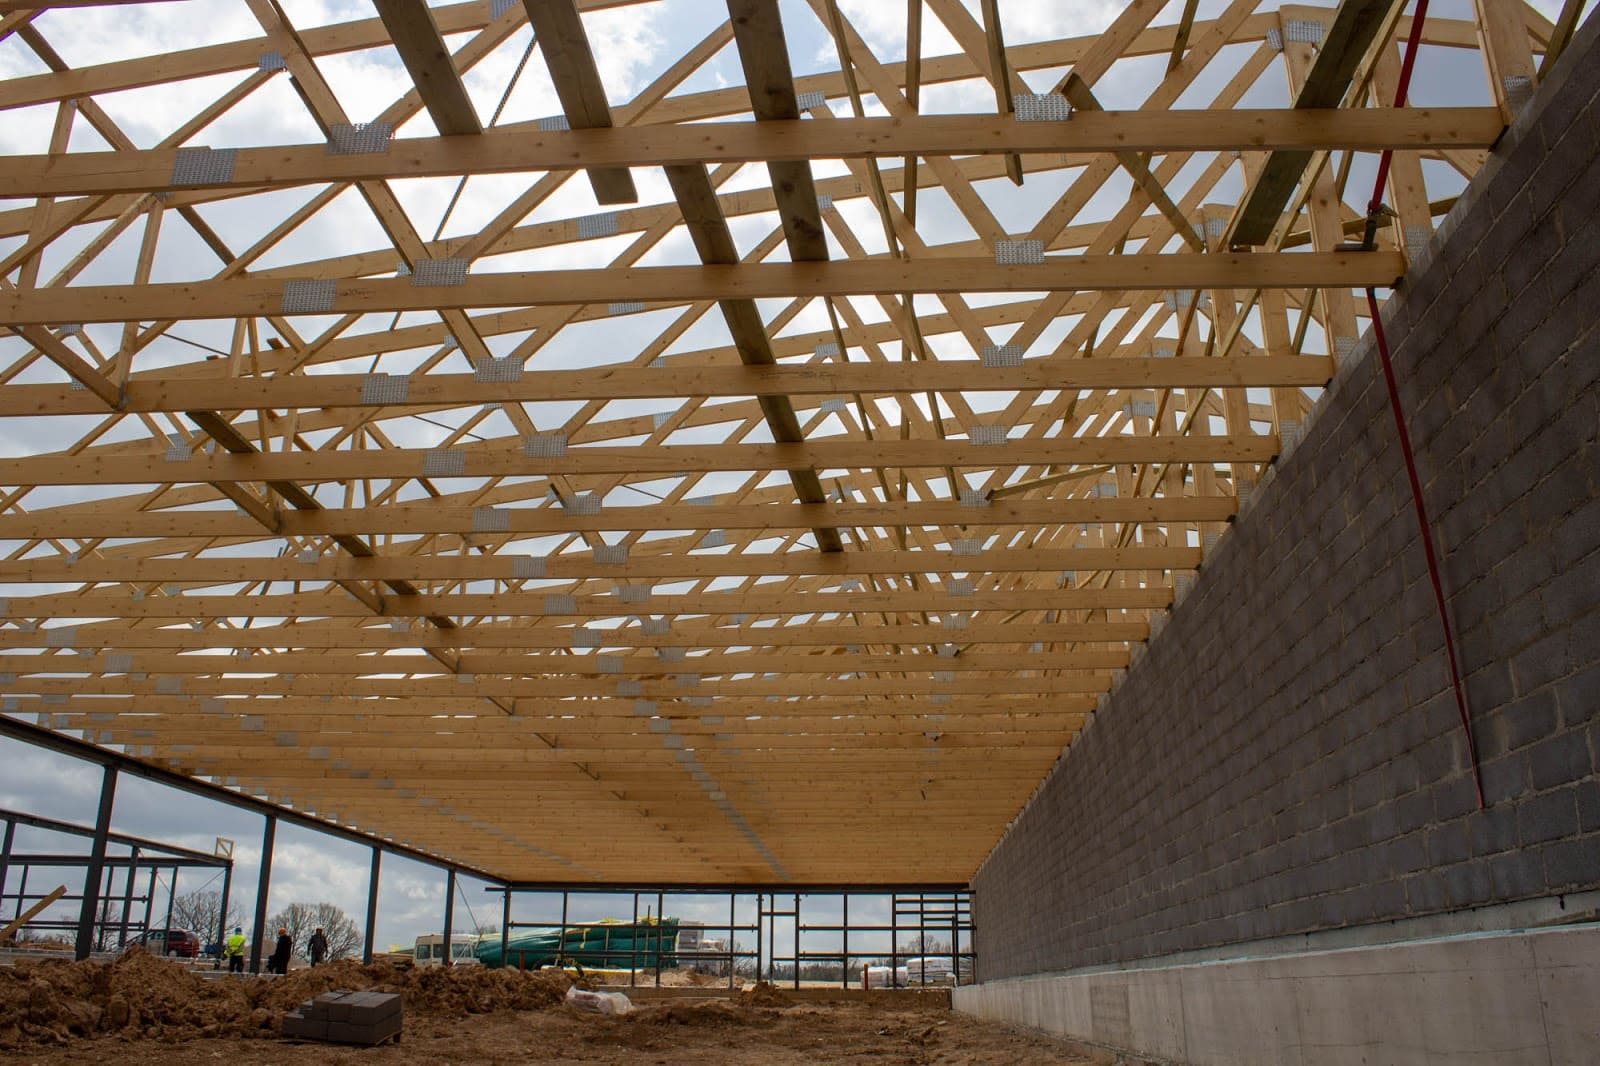 Wooden trusses for a livestock building for rabbits